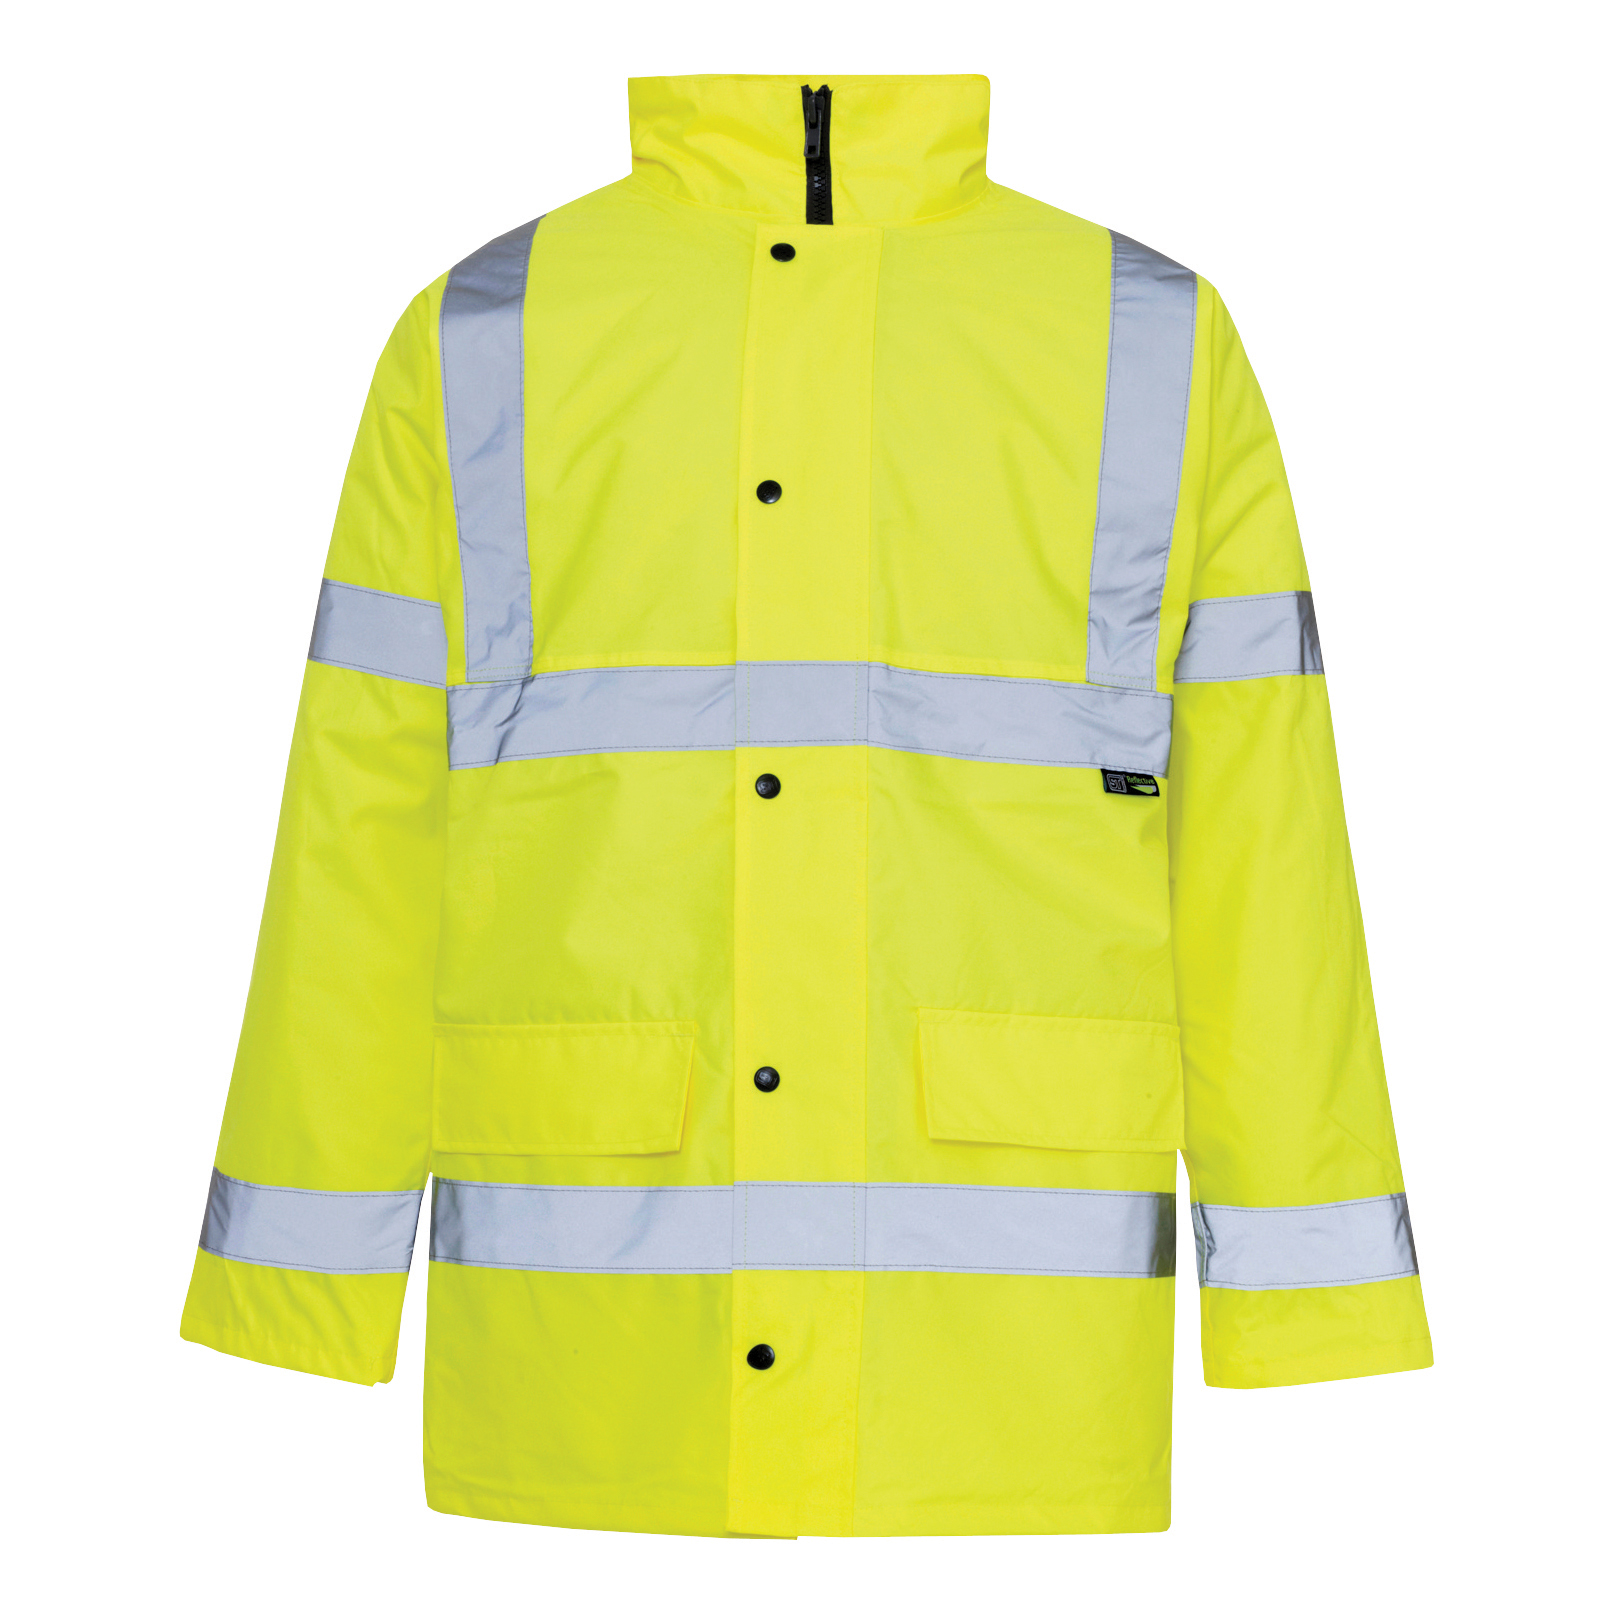 High Vis Standard Parka with 2-Way Zip Fastening 4XL Yellow Approx 3 Day Leadtime